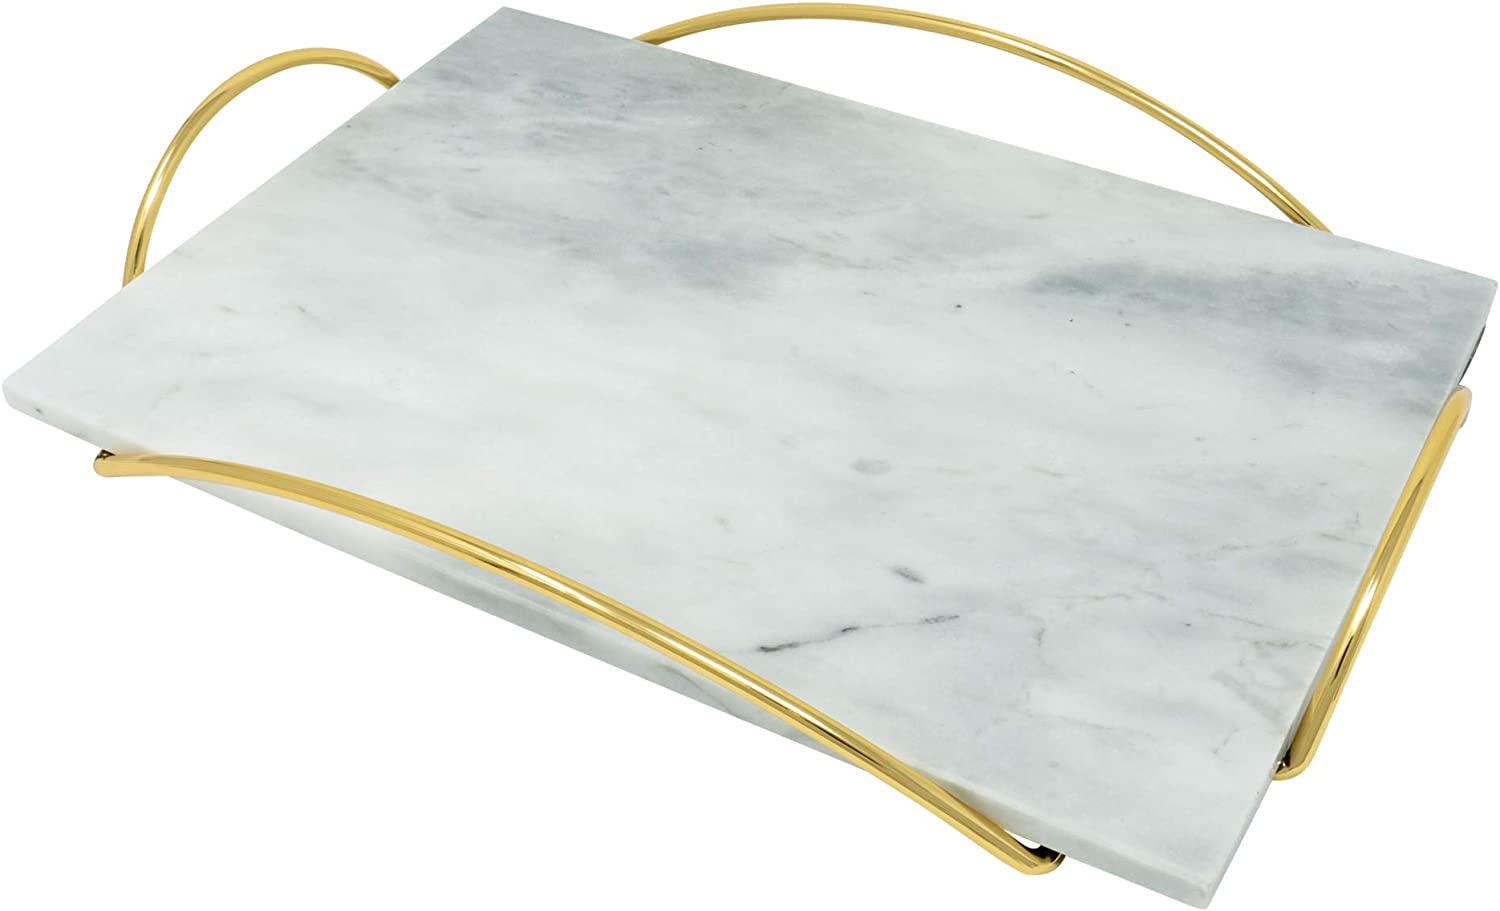 White Marble Tray with Gold Metal Handles - Real Marble Decorative Tray for Vanity - Chic Modern Perfume Tray (Rectangle, White + Gold)